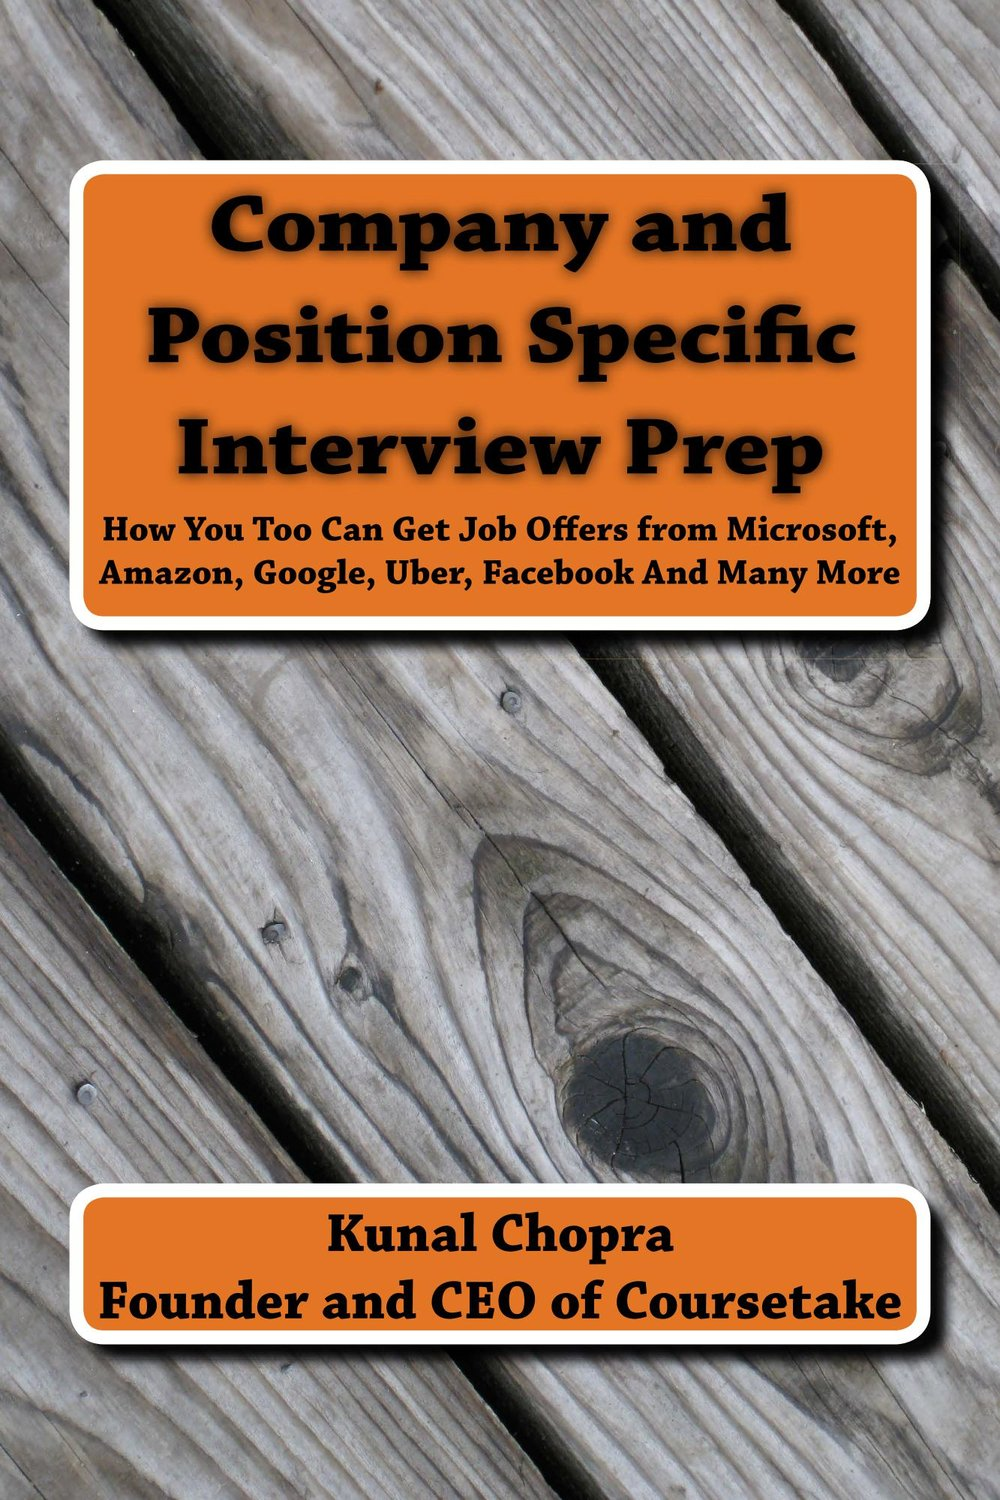 Company and Position Specific Interview Prep